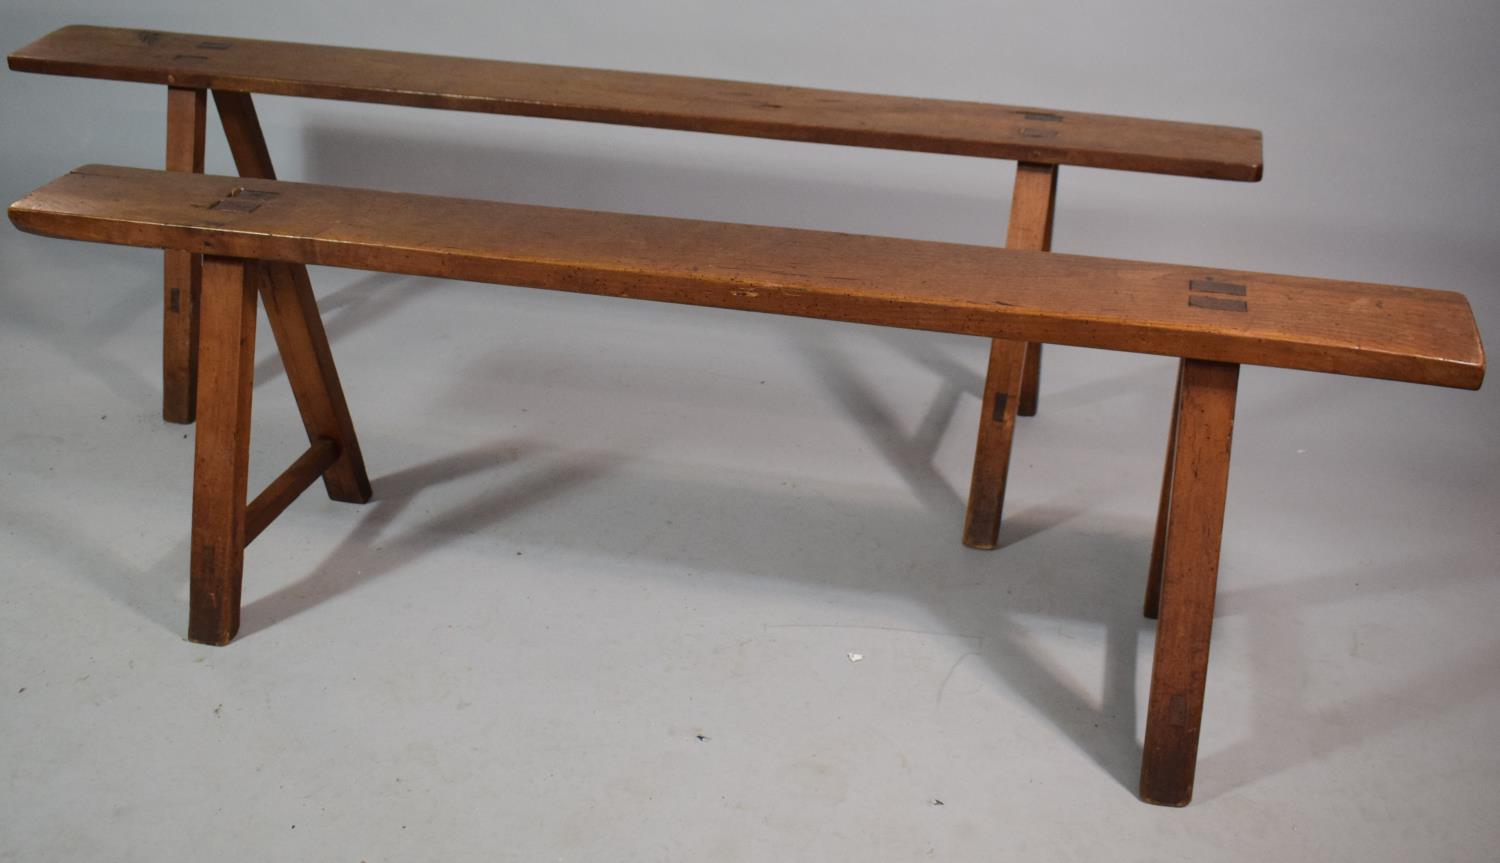 Lot 450 - A Pair of Vintage French Fruit Wood Benches on 'A' Frame Supports. 161ms and 144cms Long